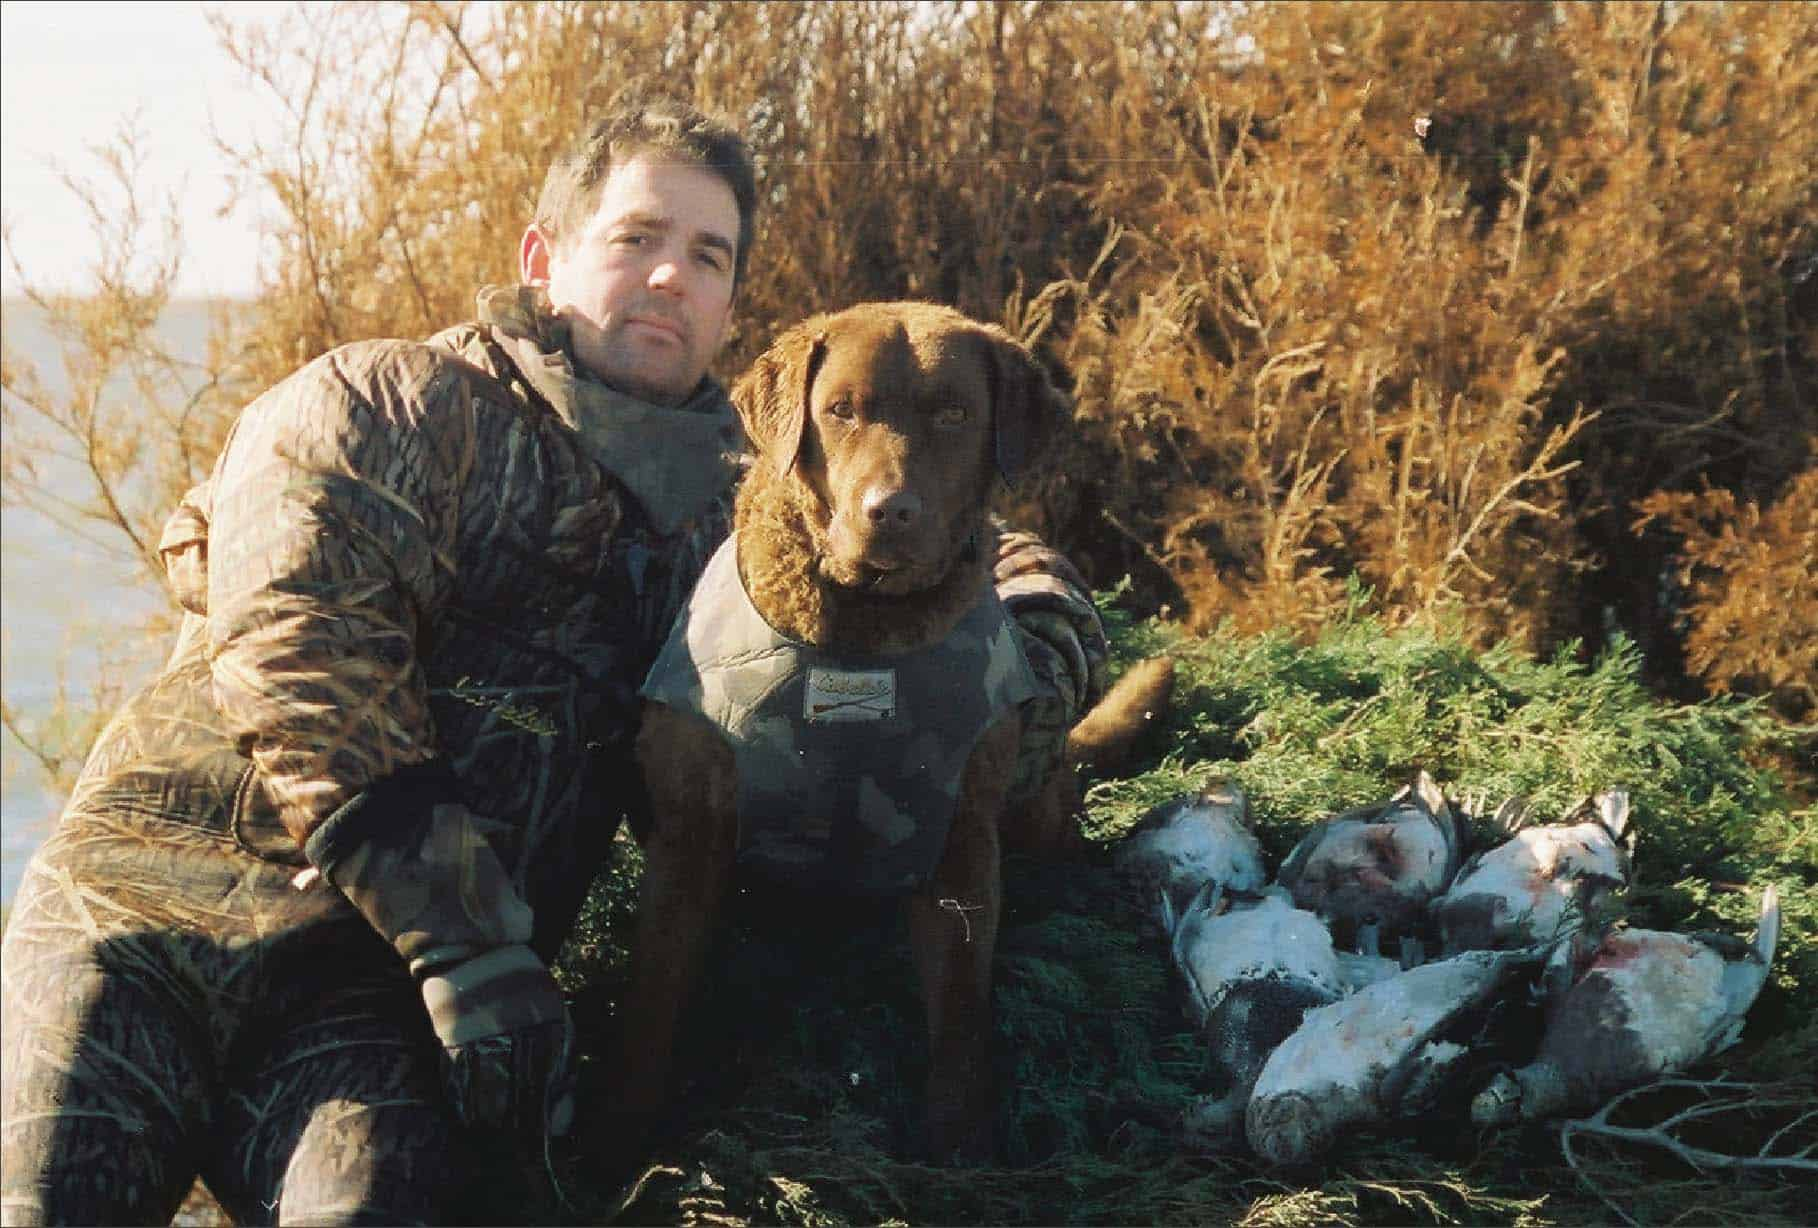 Chris Dollar and Huck. Photo by Kevin P. Colbeck.